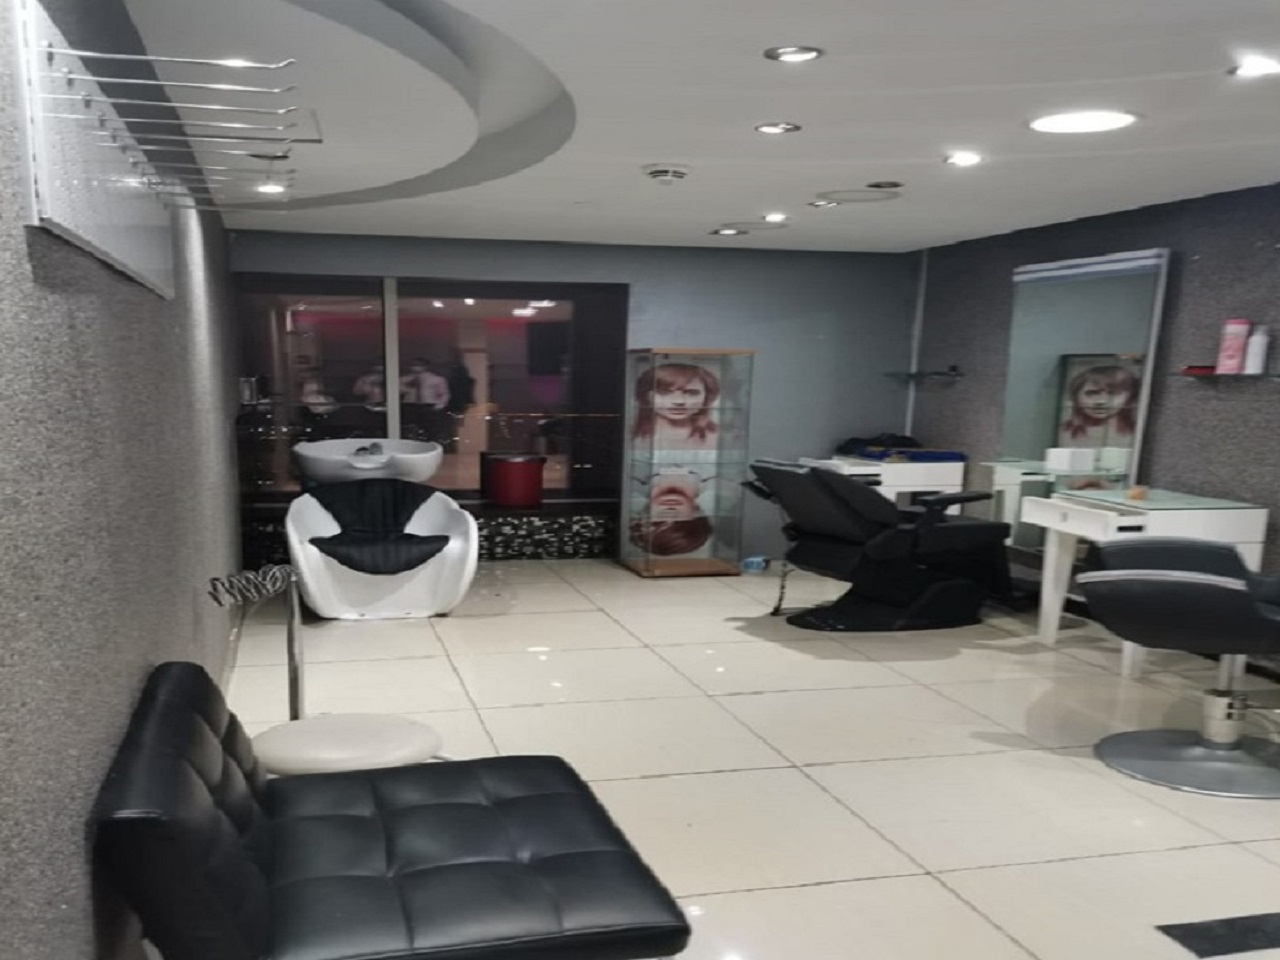 Fully_Equipped_Ladies_Salon_inside_4_Star_Hotel_557